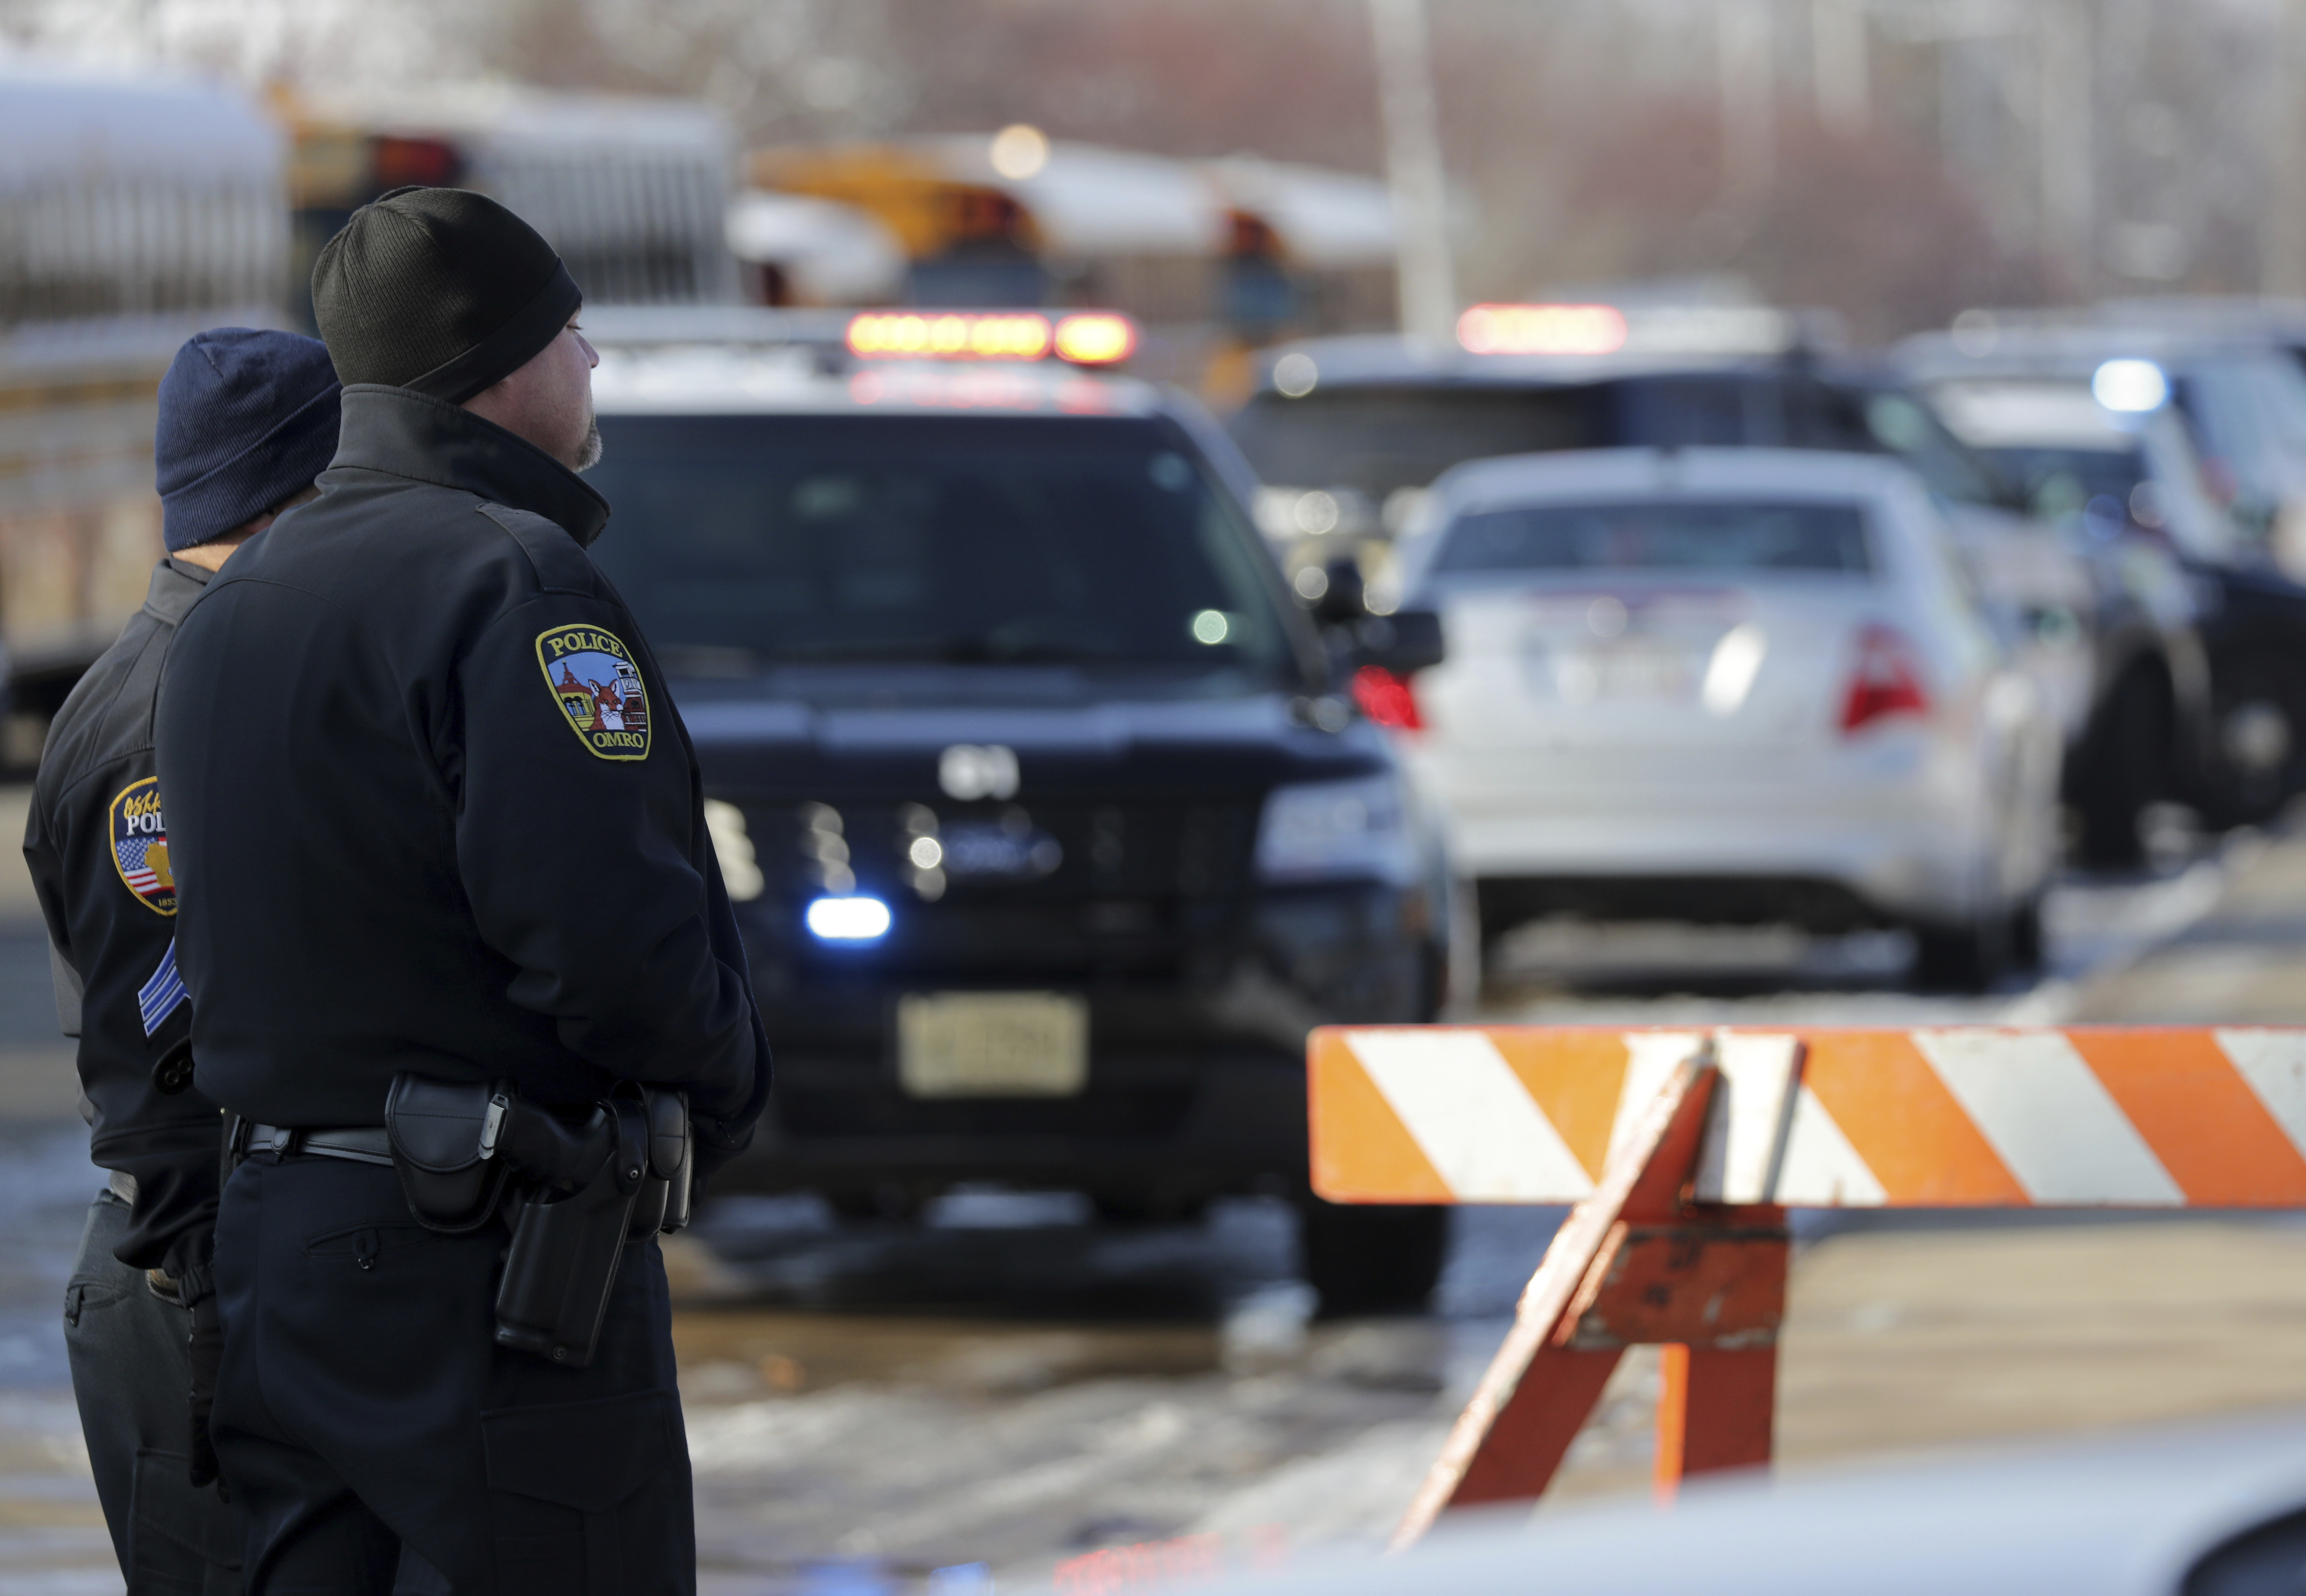 Police on the scene on an officer invloved shooting at Oshkosh West High School after an armed student confronted a school resource officer on Tuesday December 3, 2019, at in Oshkosh, Wis. Police in Oshkosh say a police officer and an armed student whom he confronted at the school were both wounded in the confrontation Tuesday morning.